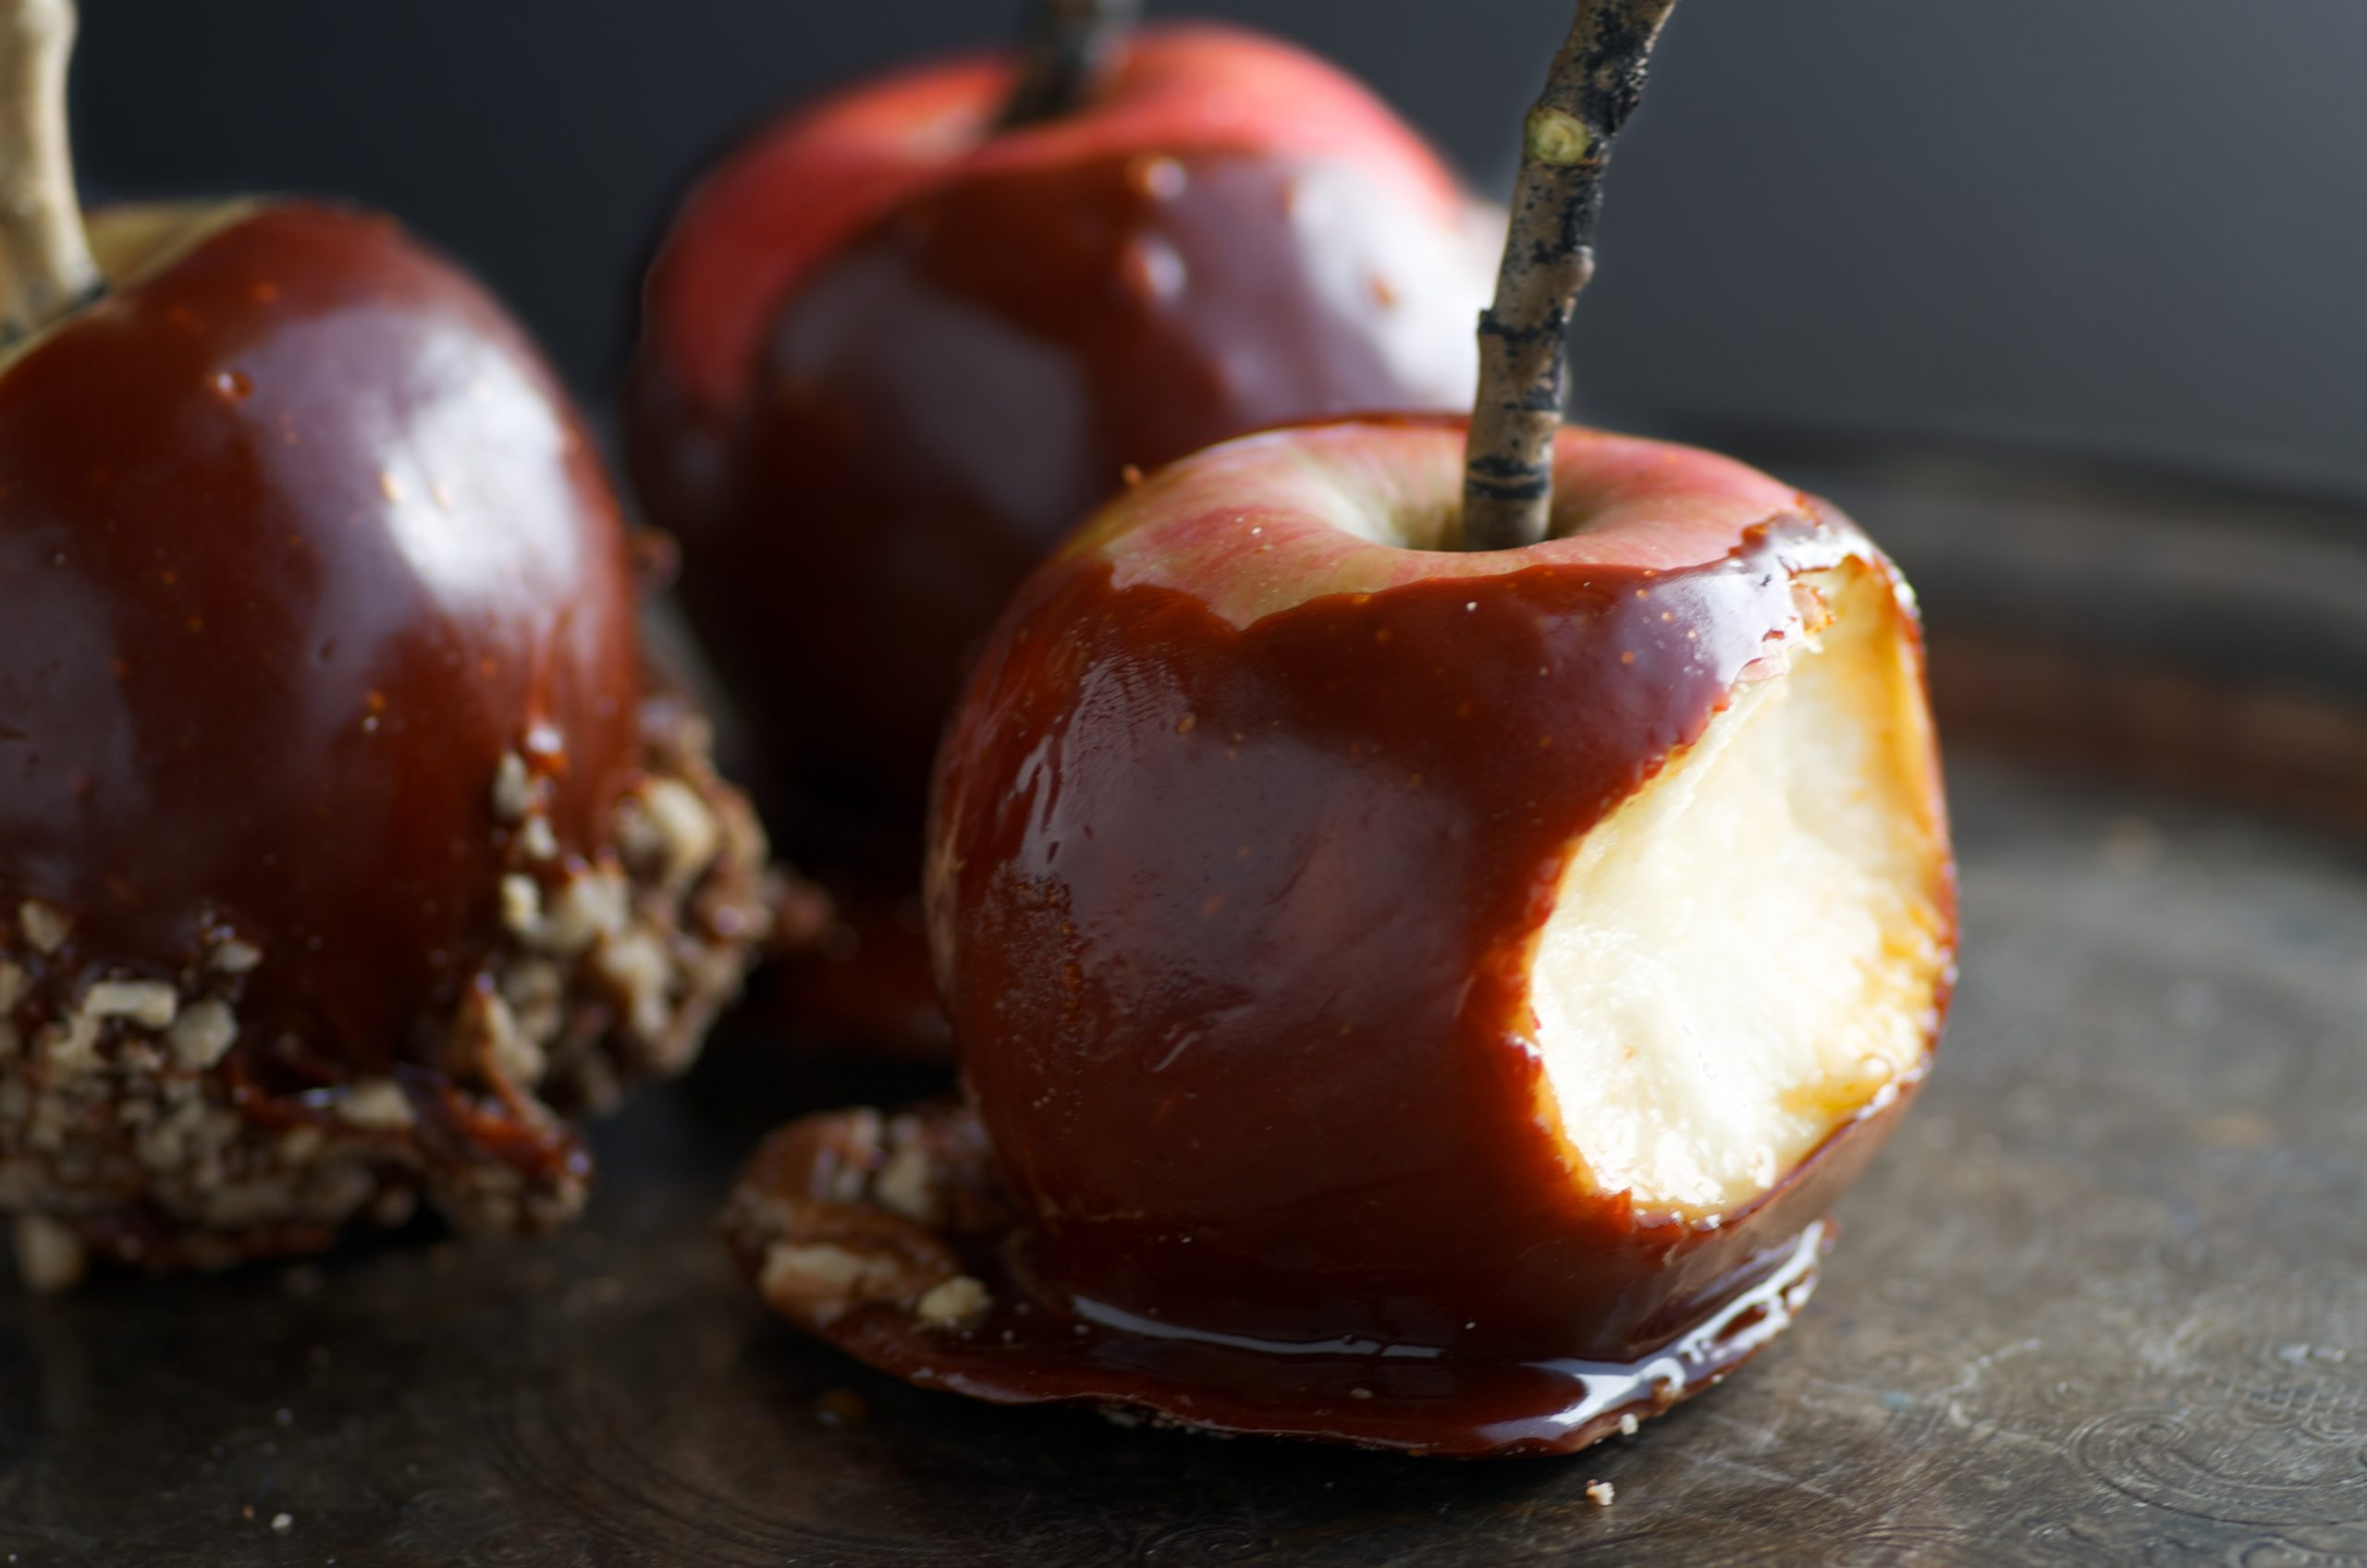 caramel-apples-horizontal-bite-1